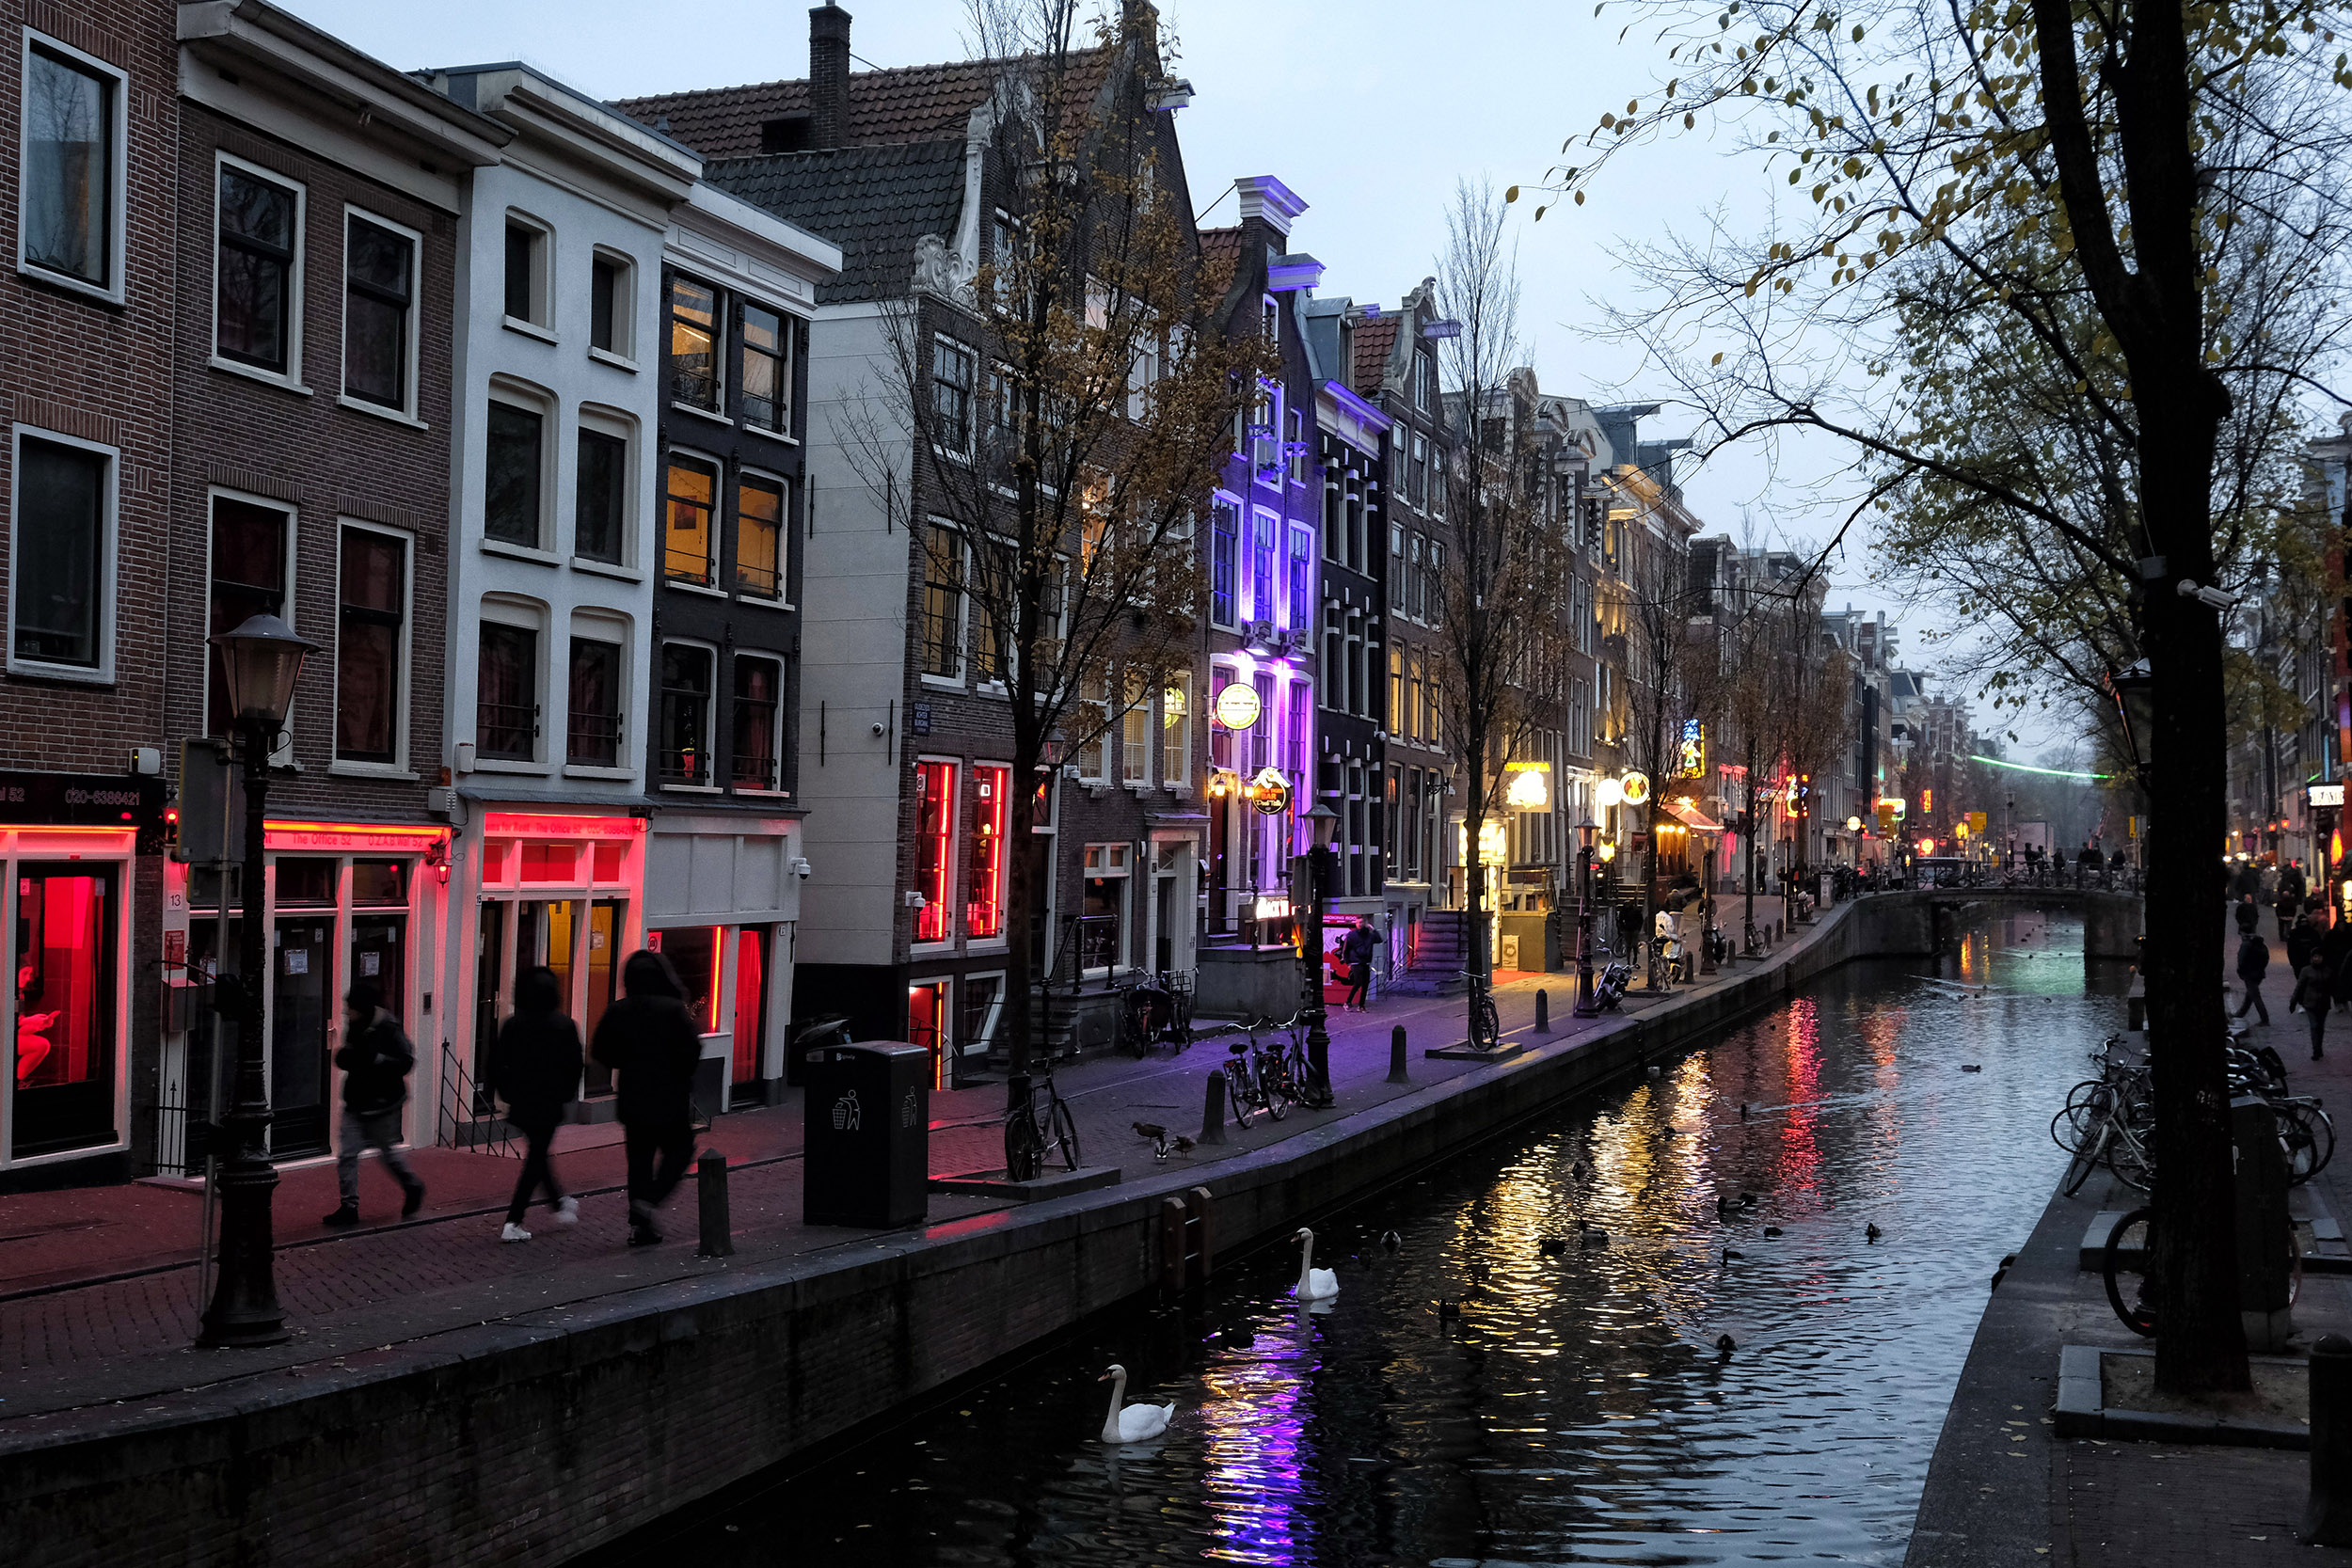 Amsterdam Wallen Red Light District prostitutie bordeel bordelen ramen gracht